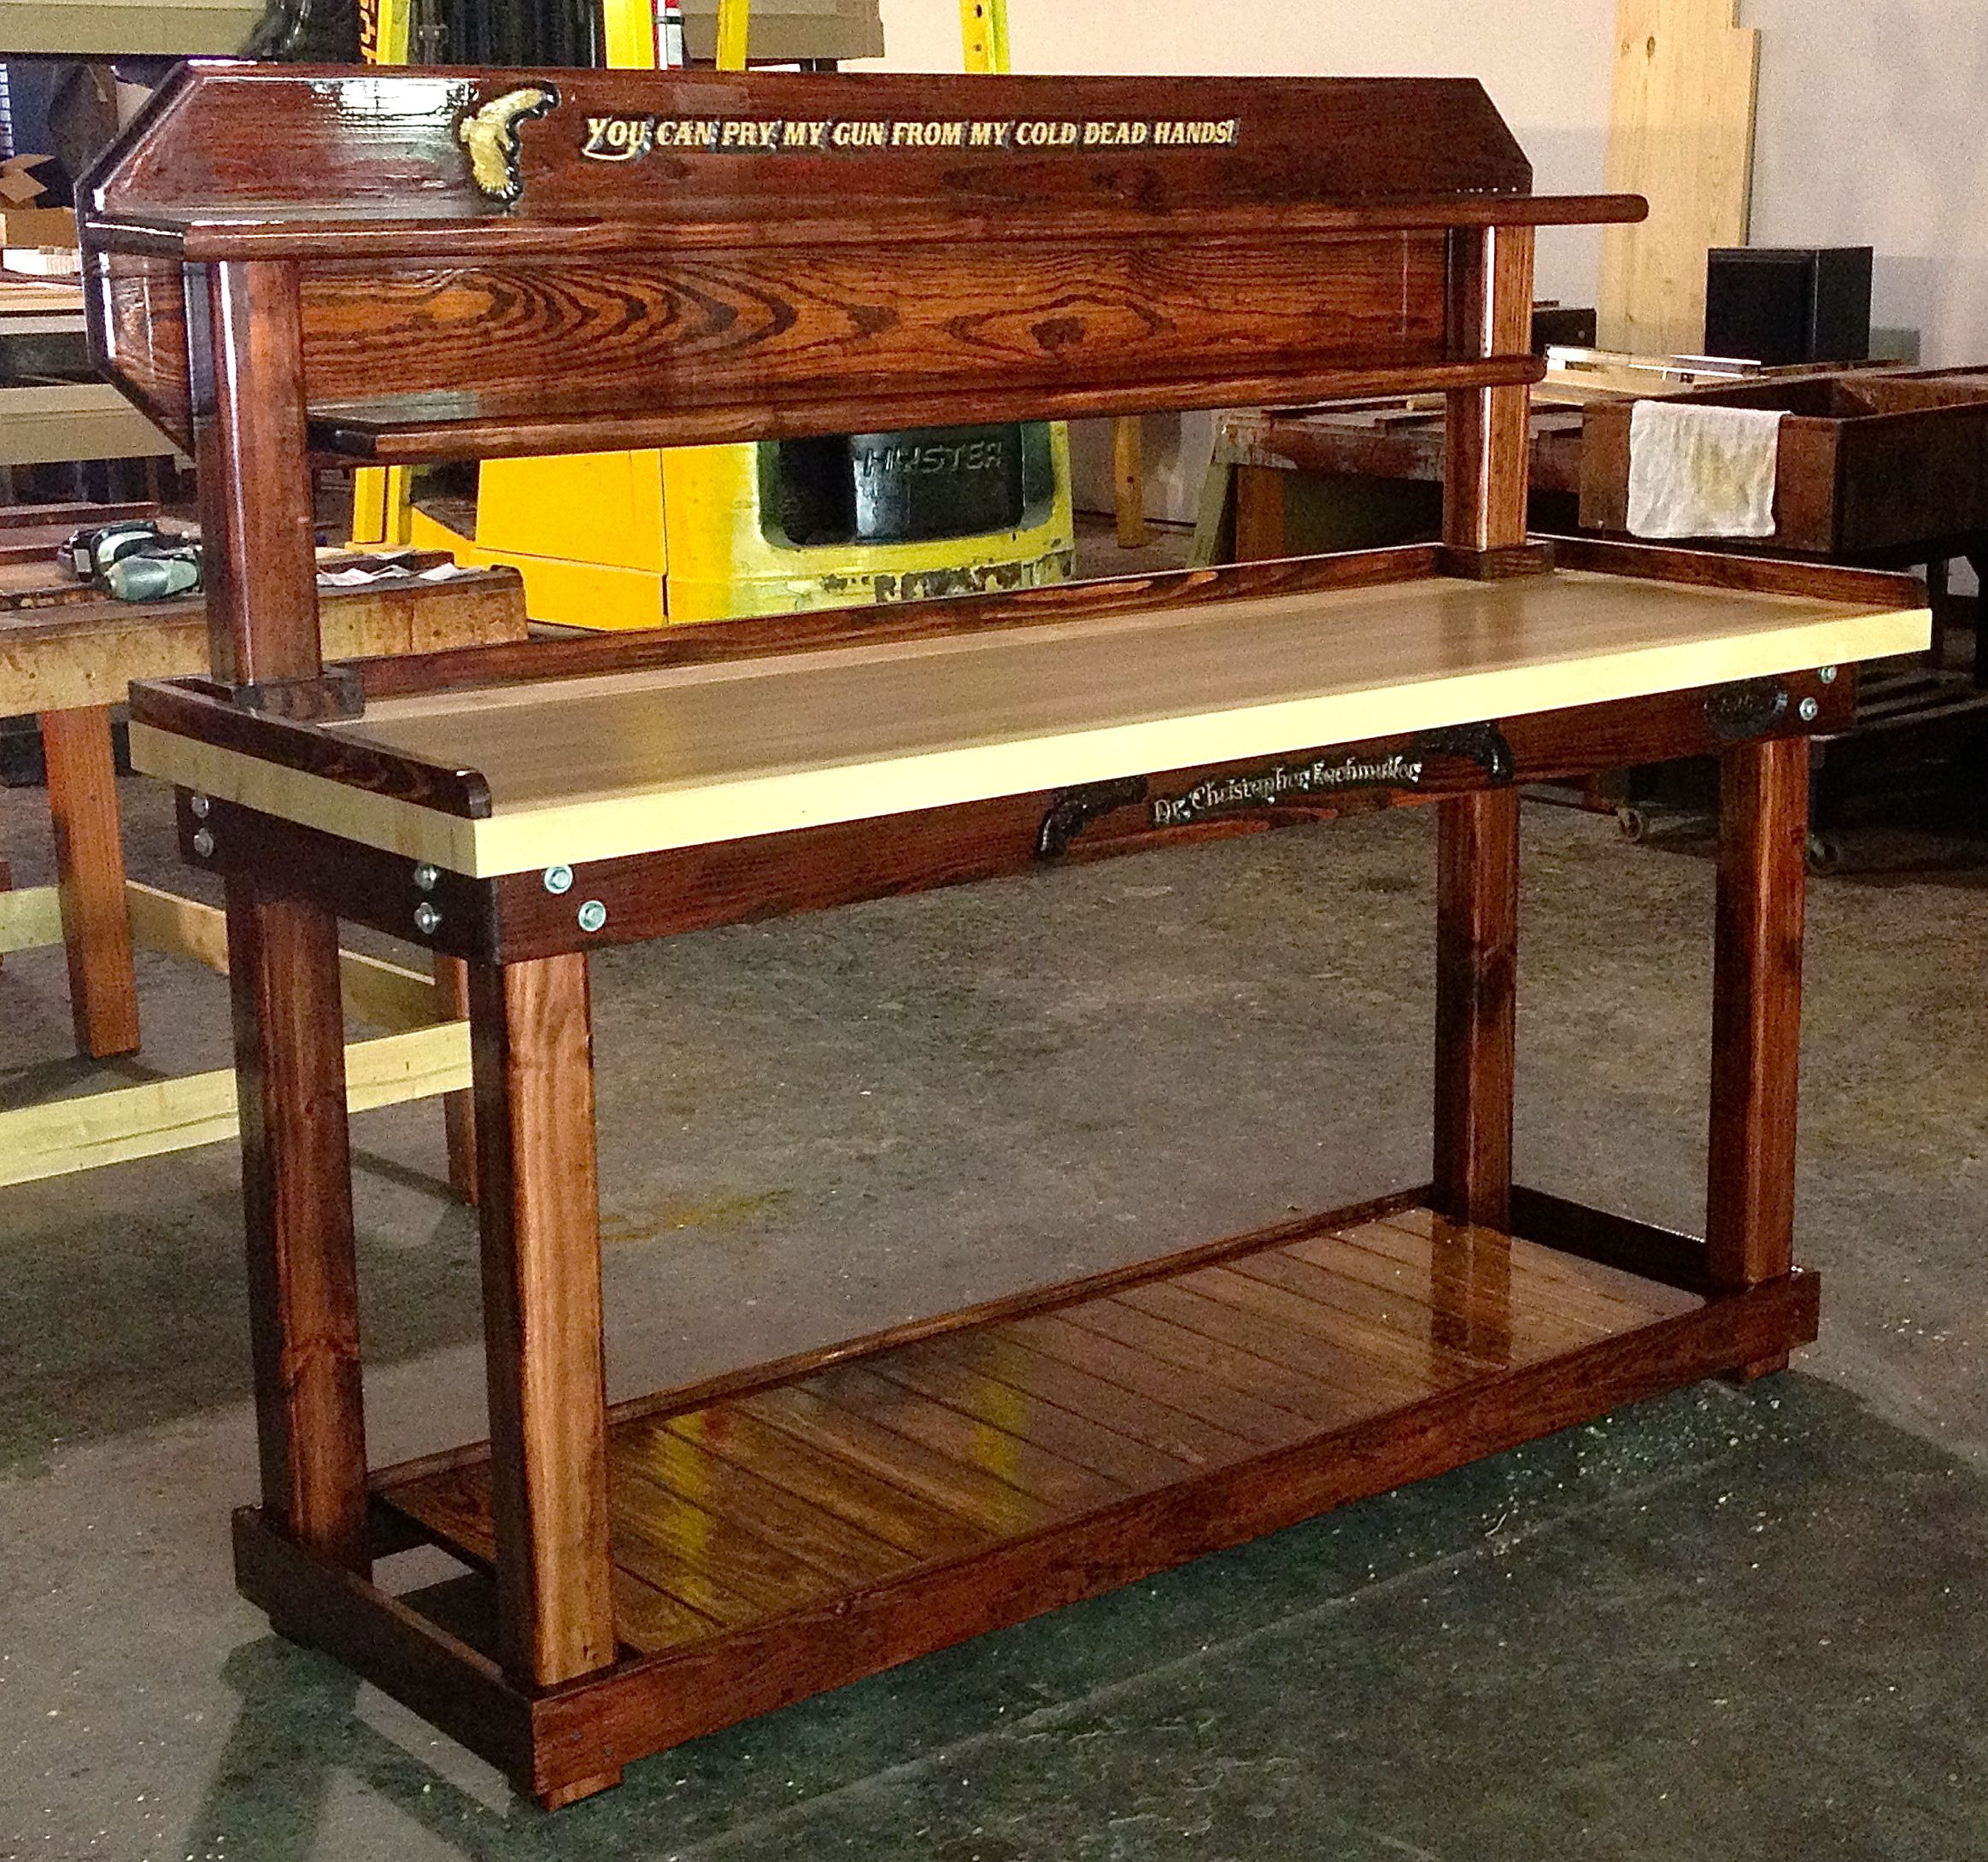 Wow A mahogany reloading bench WEAPONS Pinterest